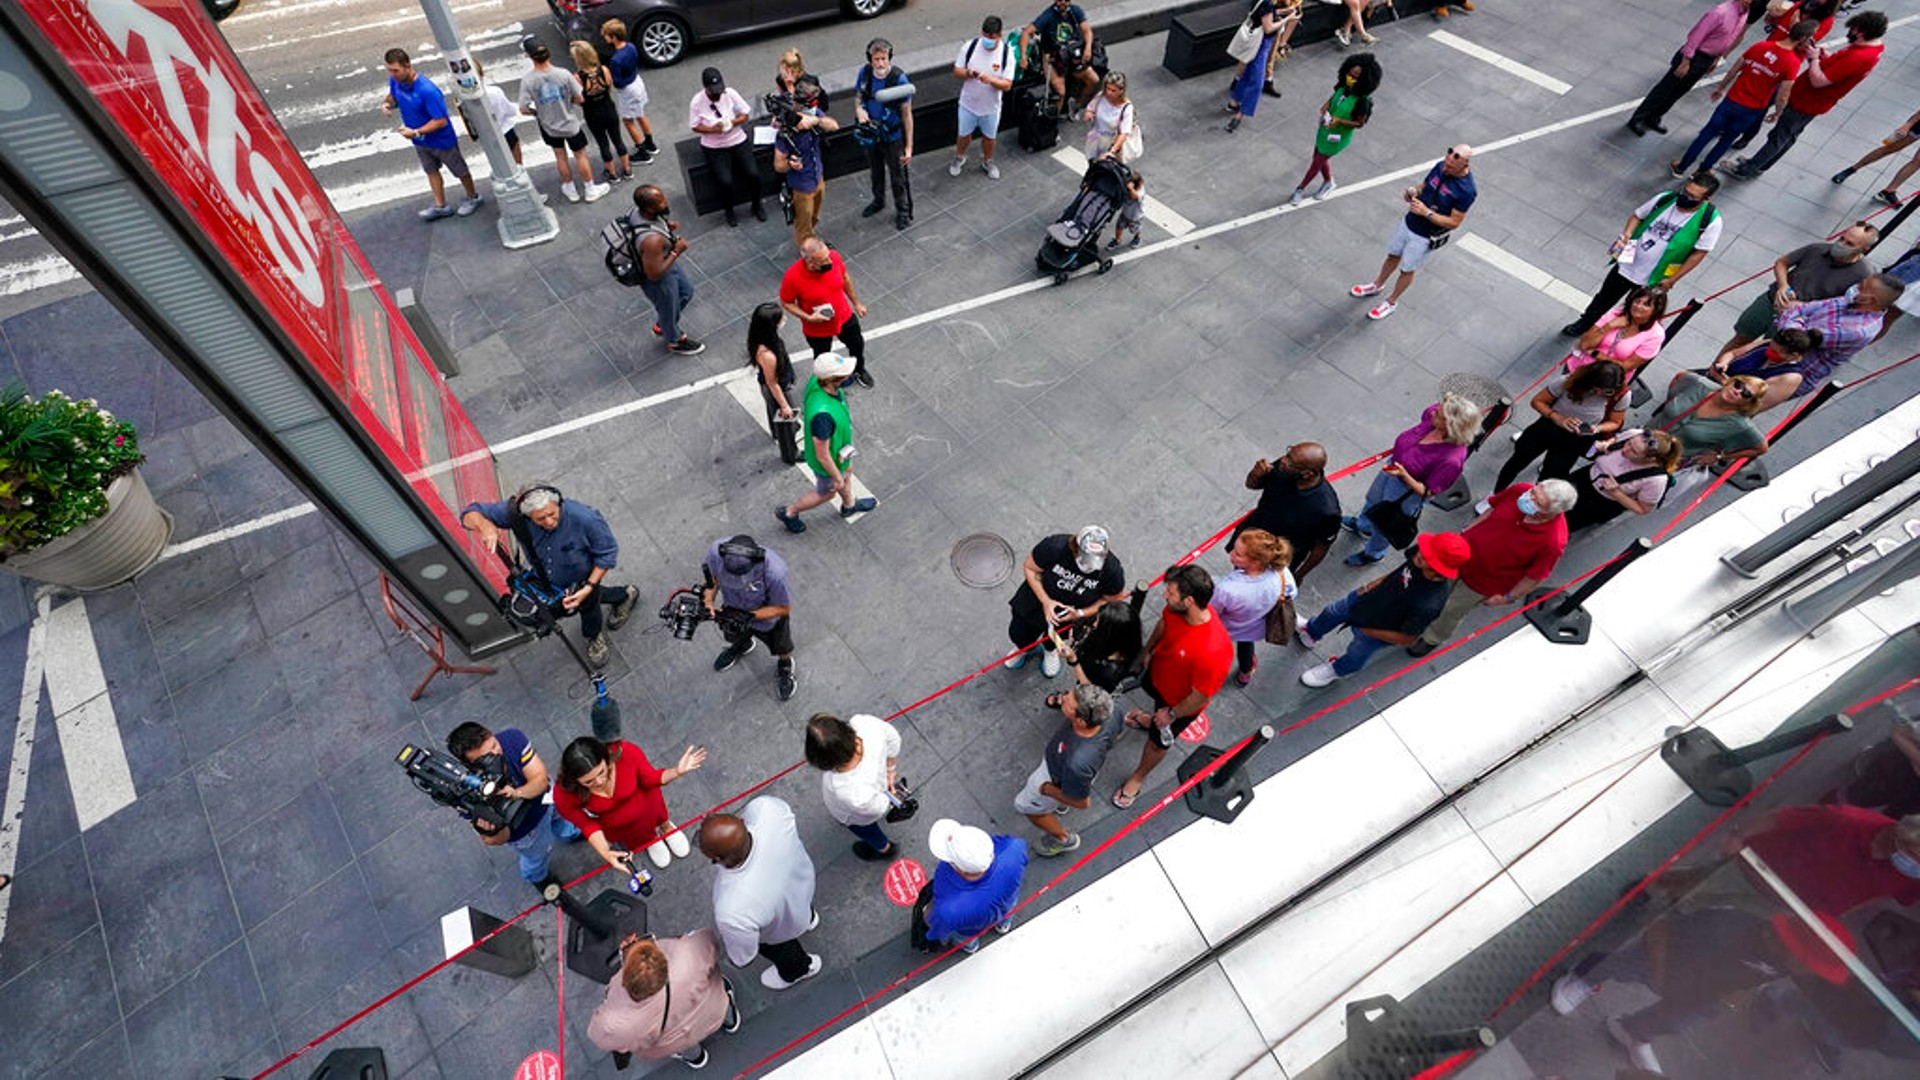 A television crew interviews the first people in line to buy discounted Broadway show tickets at TKTS, Tuesday, Sept. 14, 2021, in New York's Times Square. (AP Photo/Mary Altaffer)